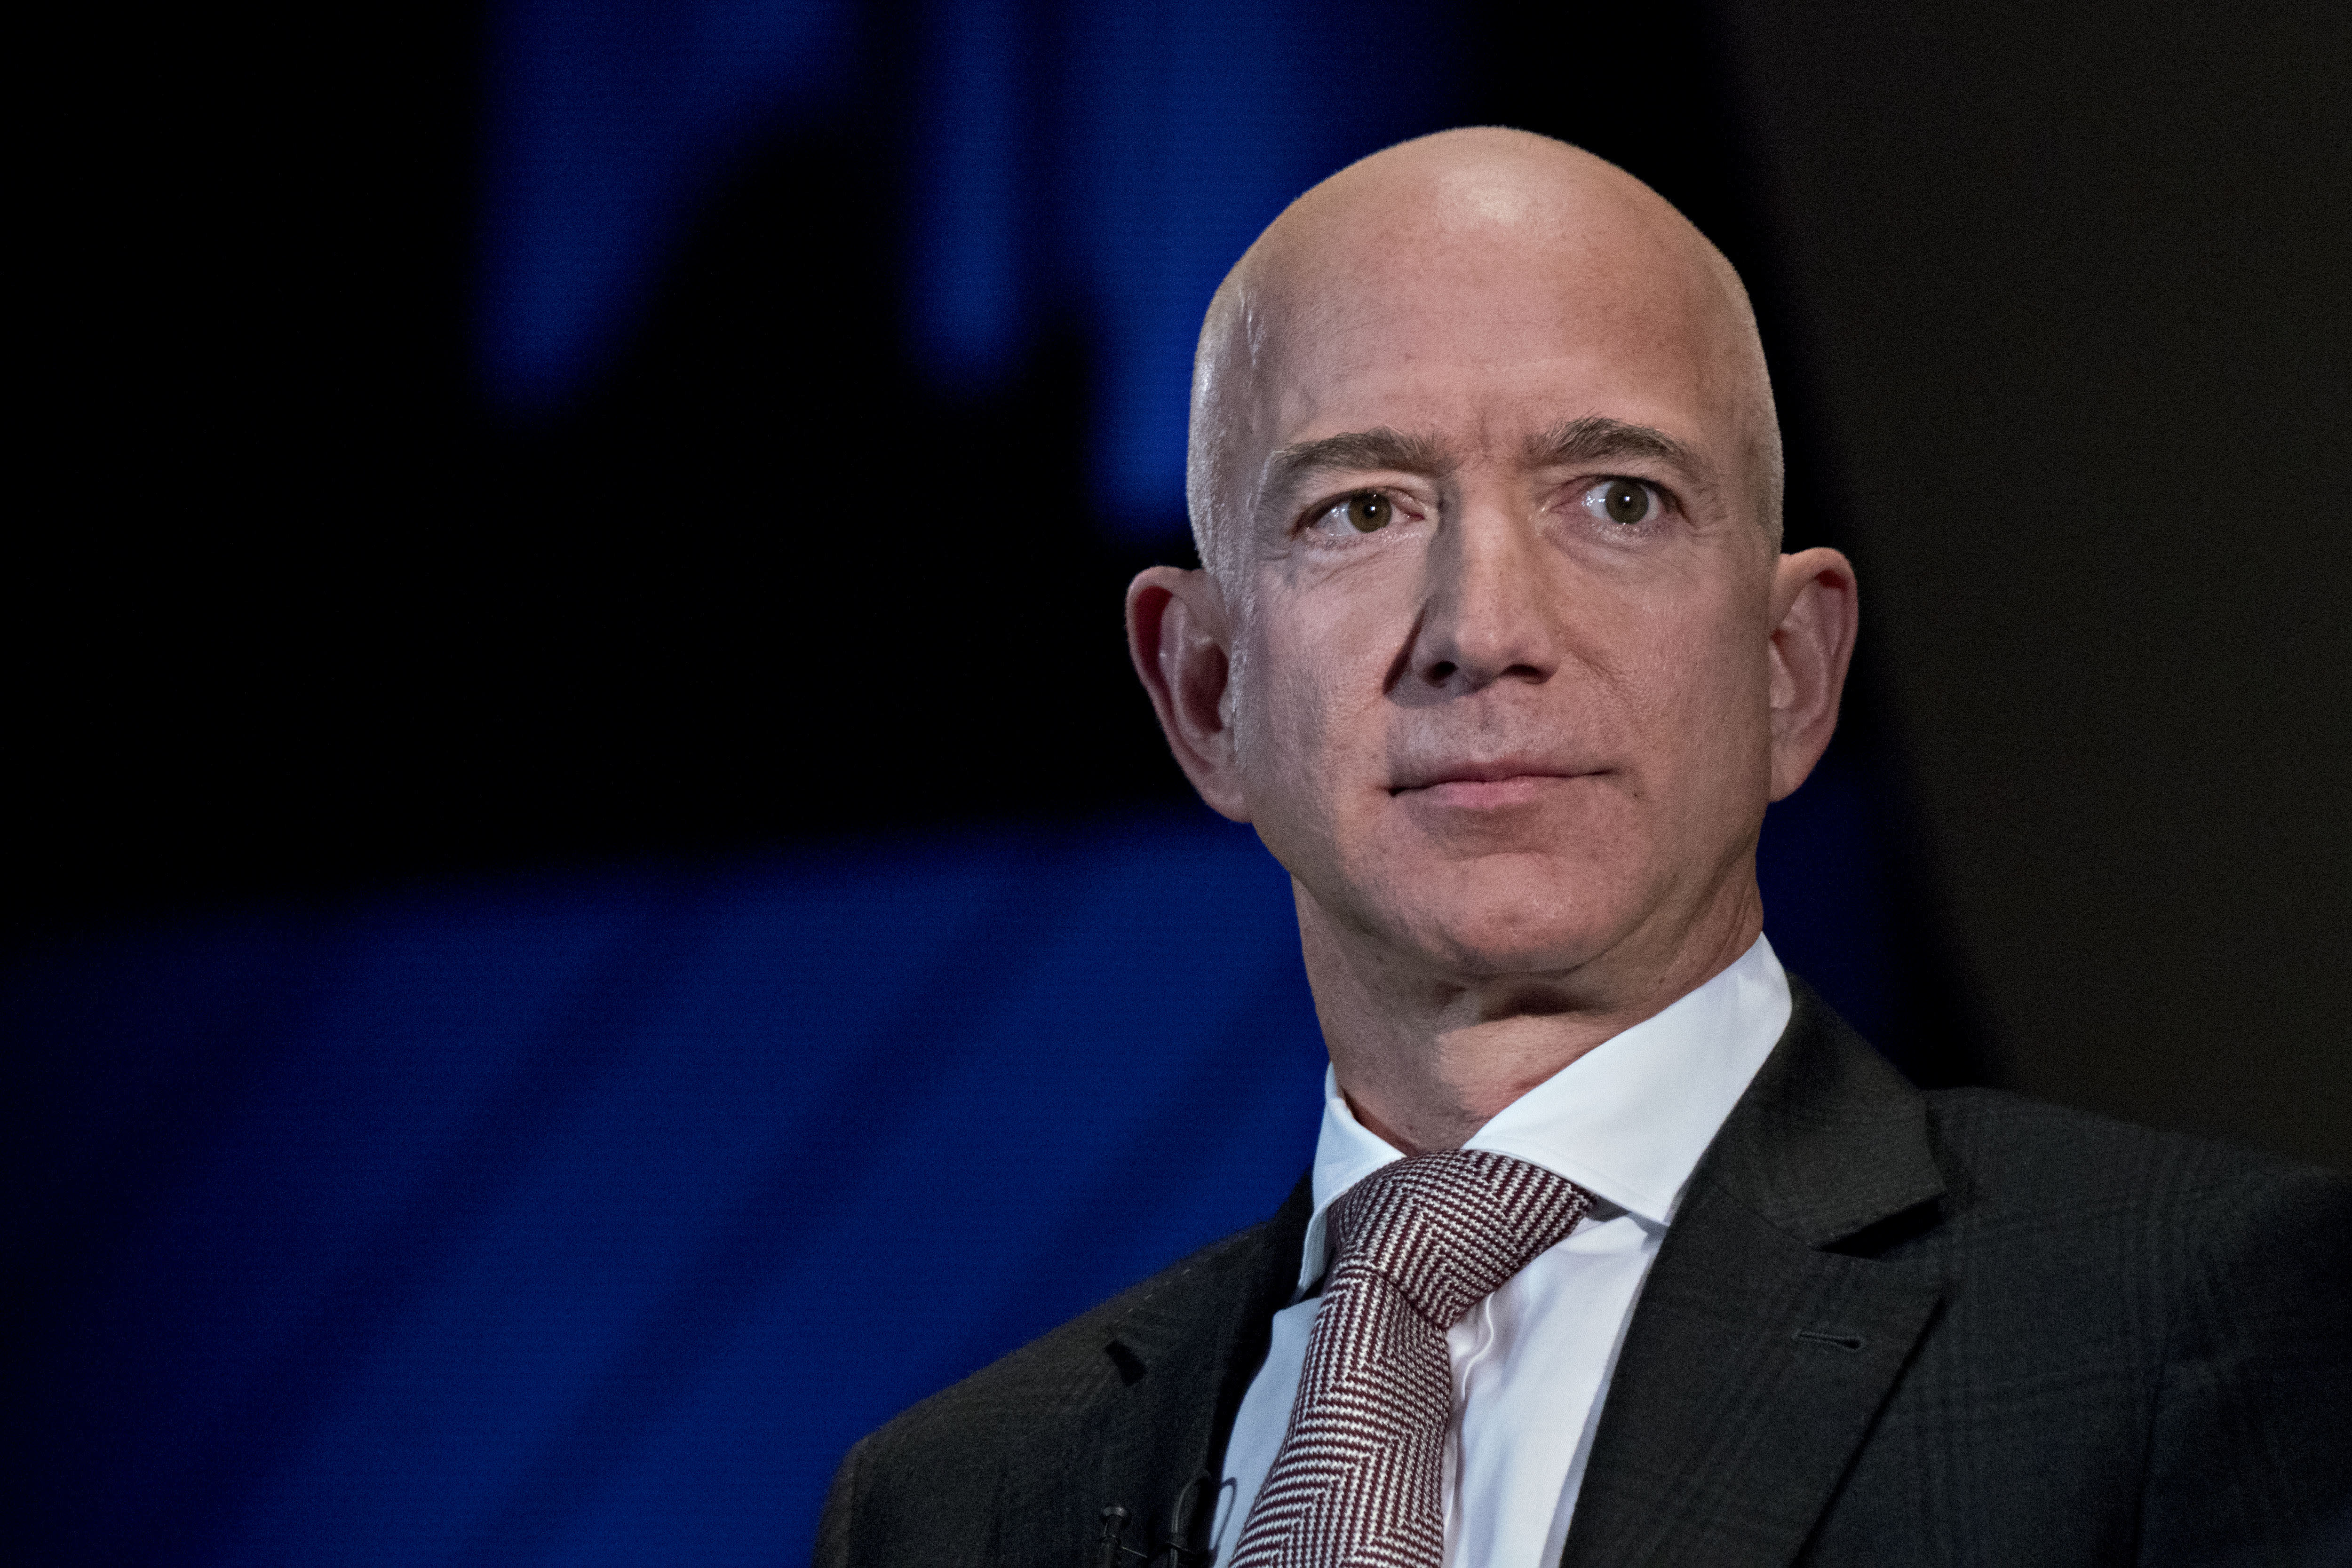 Amazon is expected to show slowest sales growth in four years when it reports results after the bell